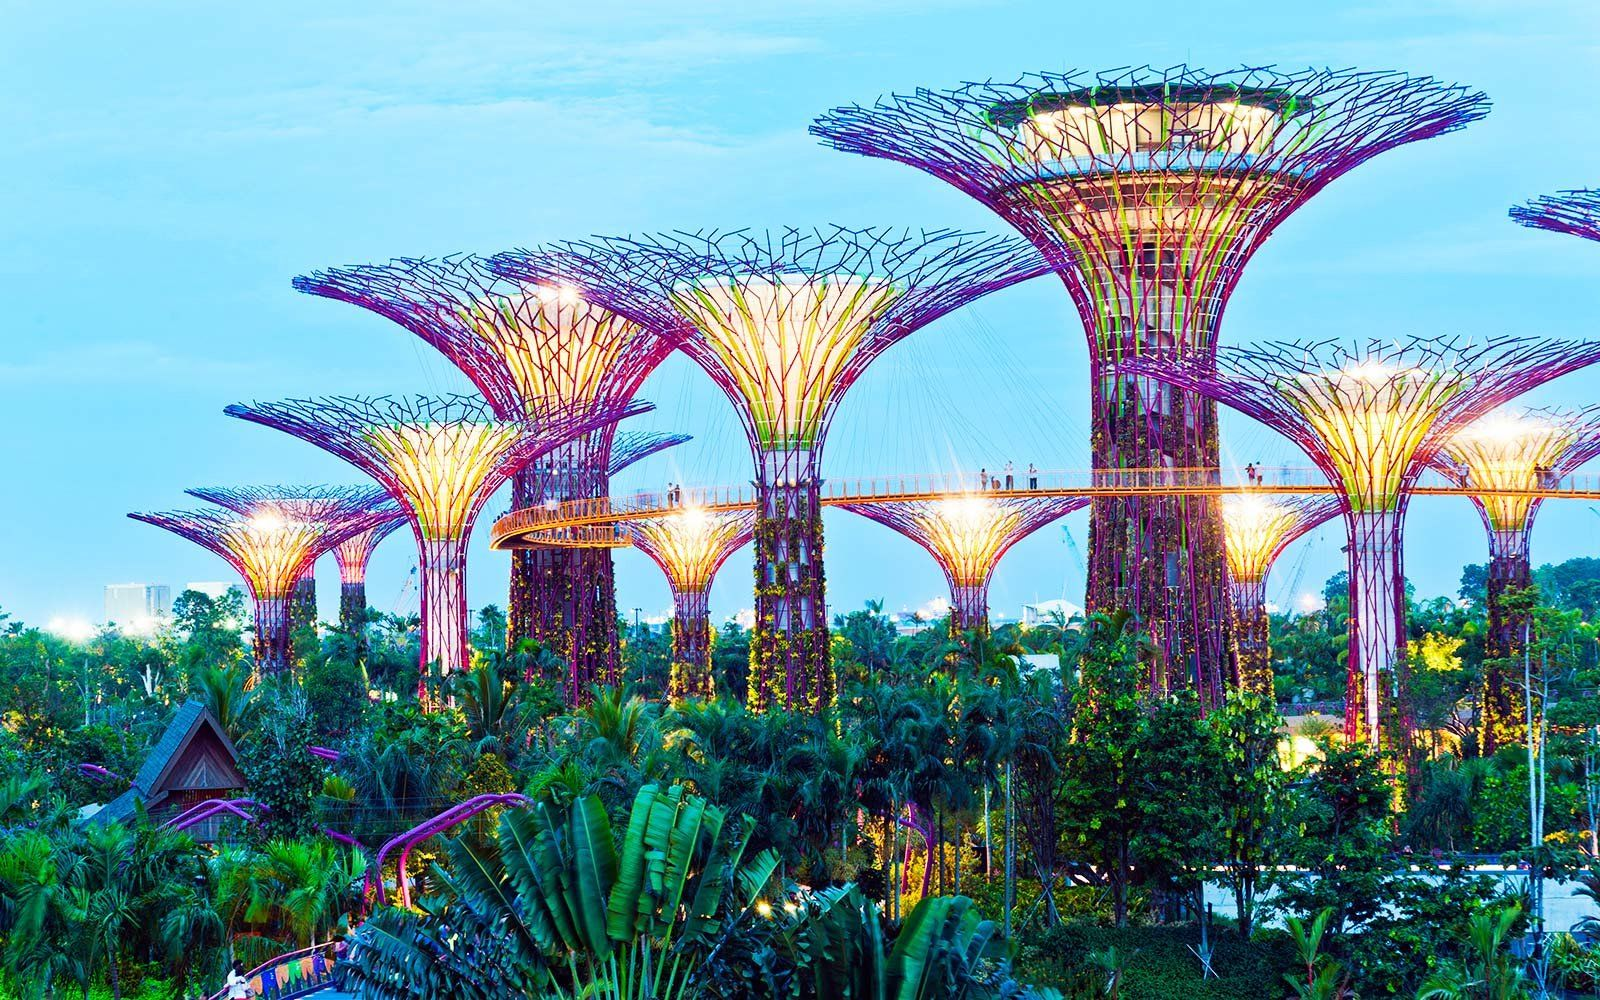 9cc15cadd3f058ee318b0956915bfb70 - Best Time To Go To Gardens By The Bay